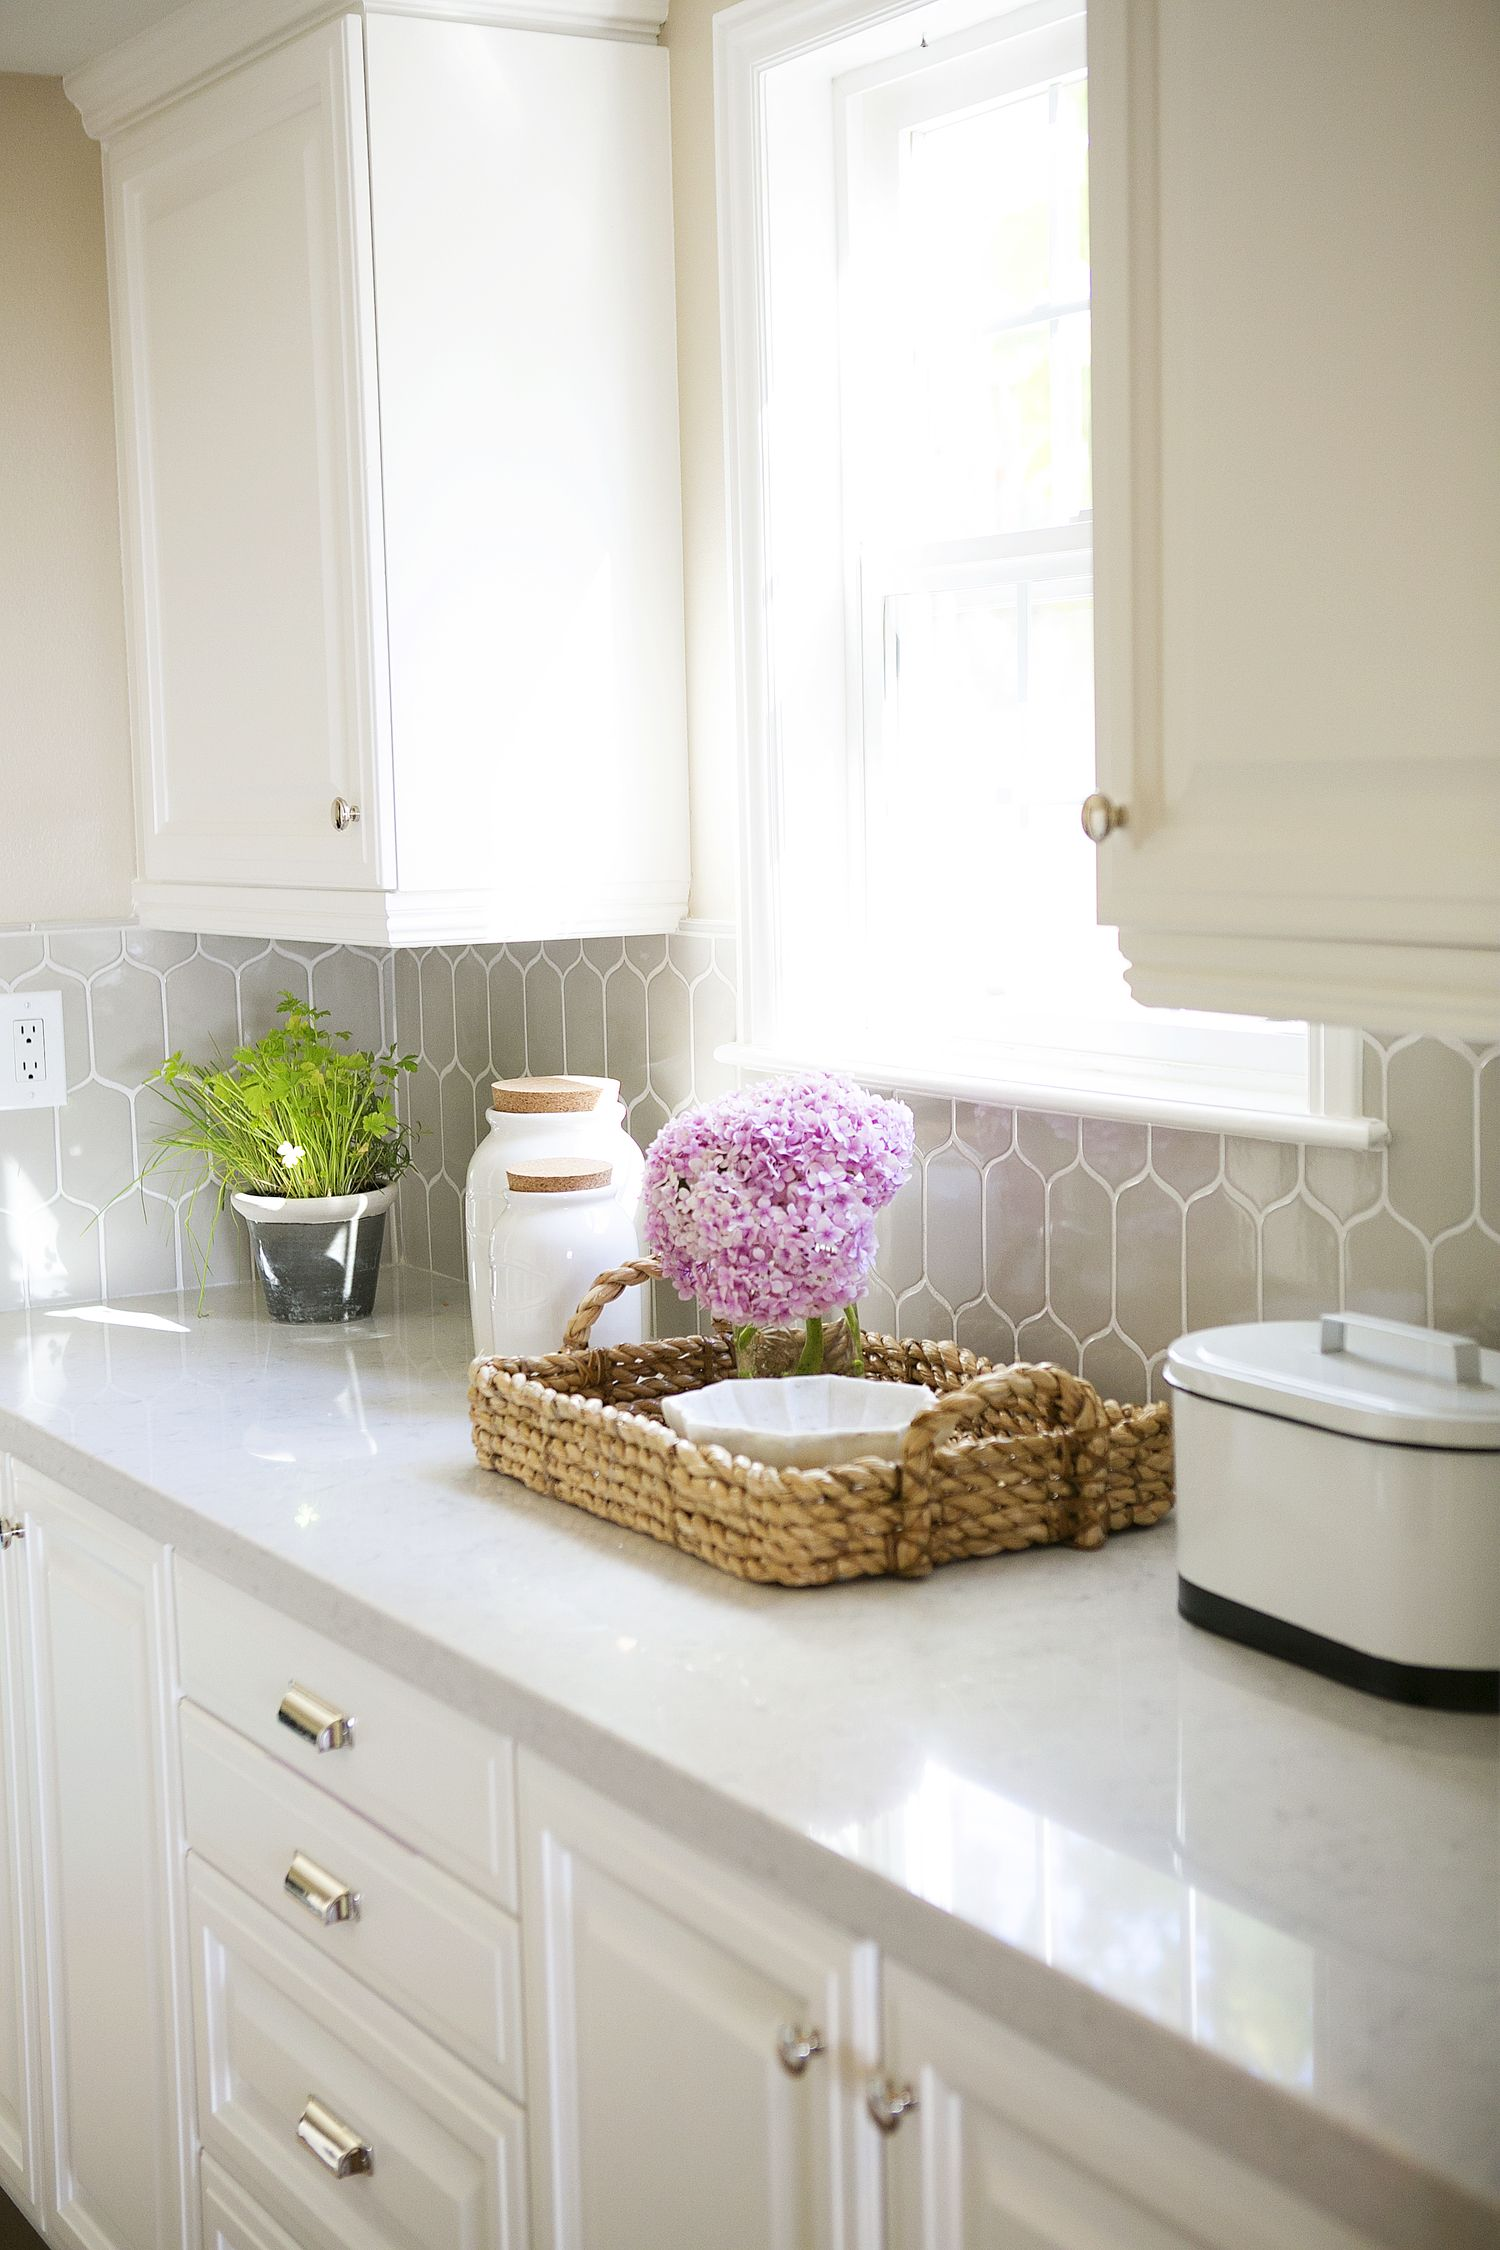 Traditional Style Decor And Storage Basket With Pink Hydrangea And Quartz Countertops